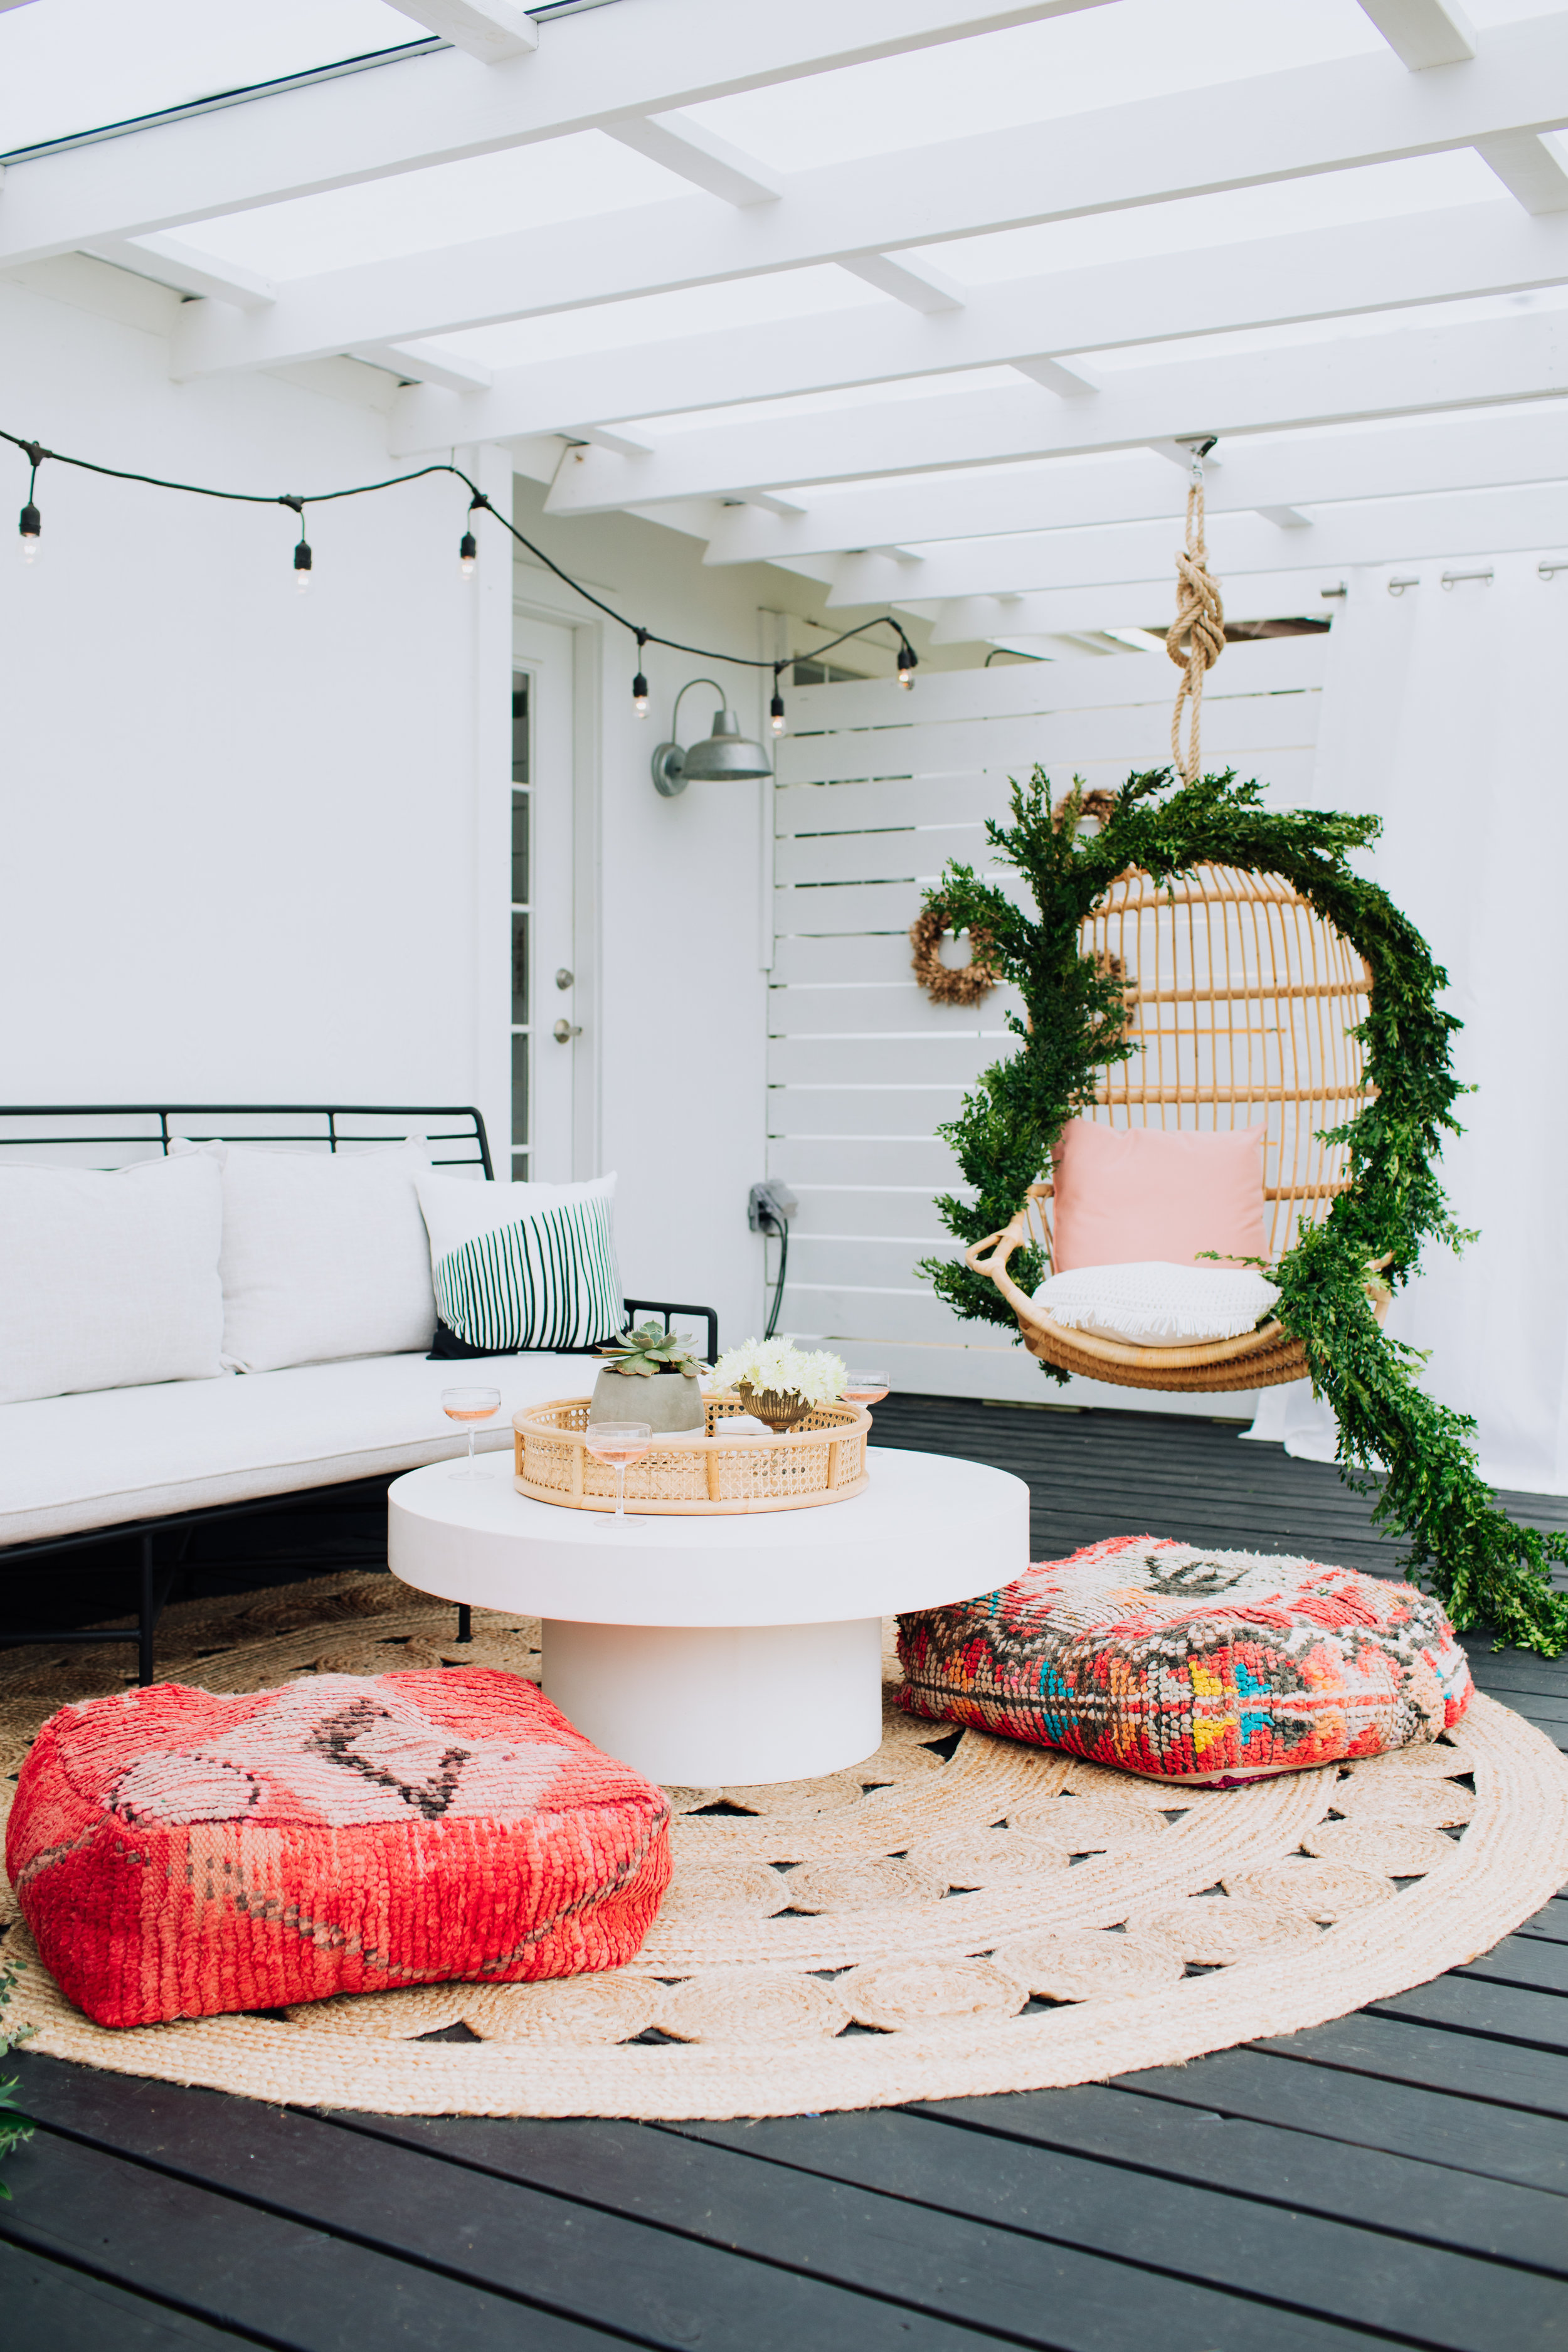 Love-Ding-Blog-Spruce-Kit-Backyard-Reveal-Austin.jpg